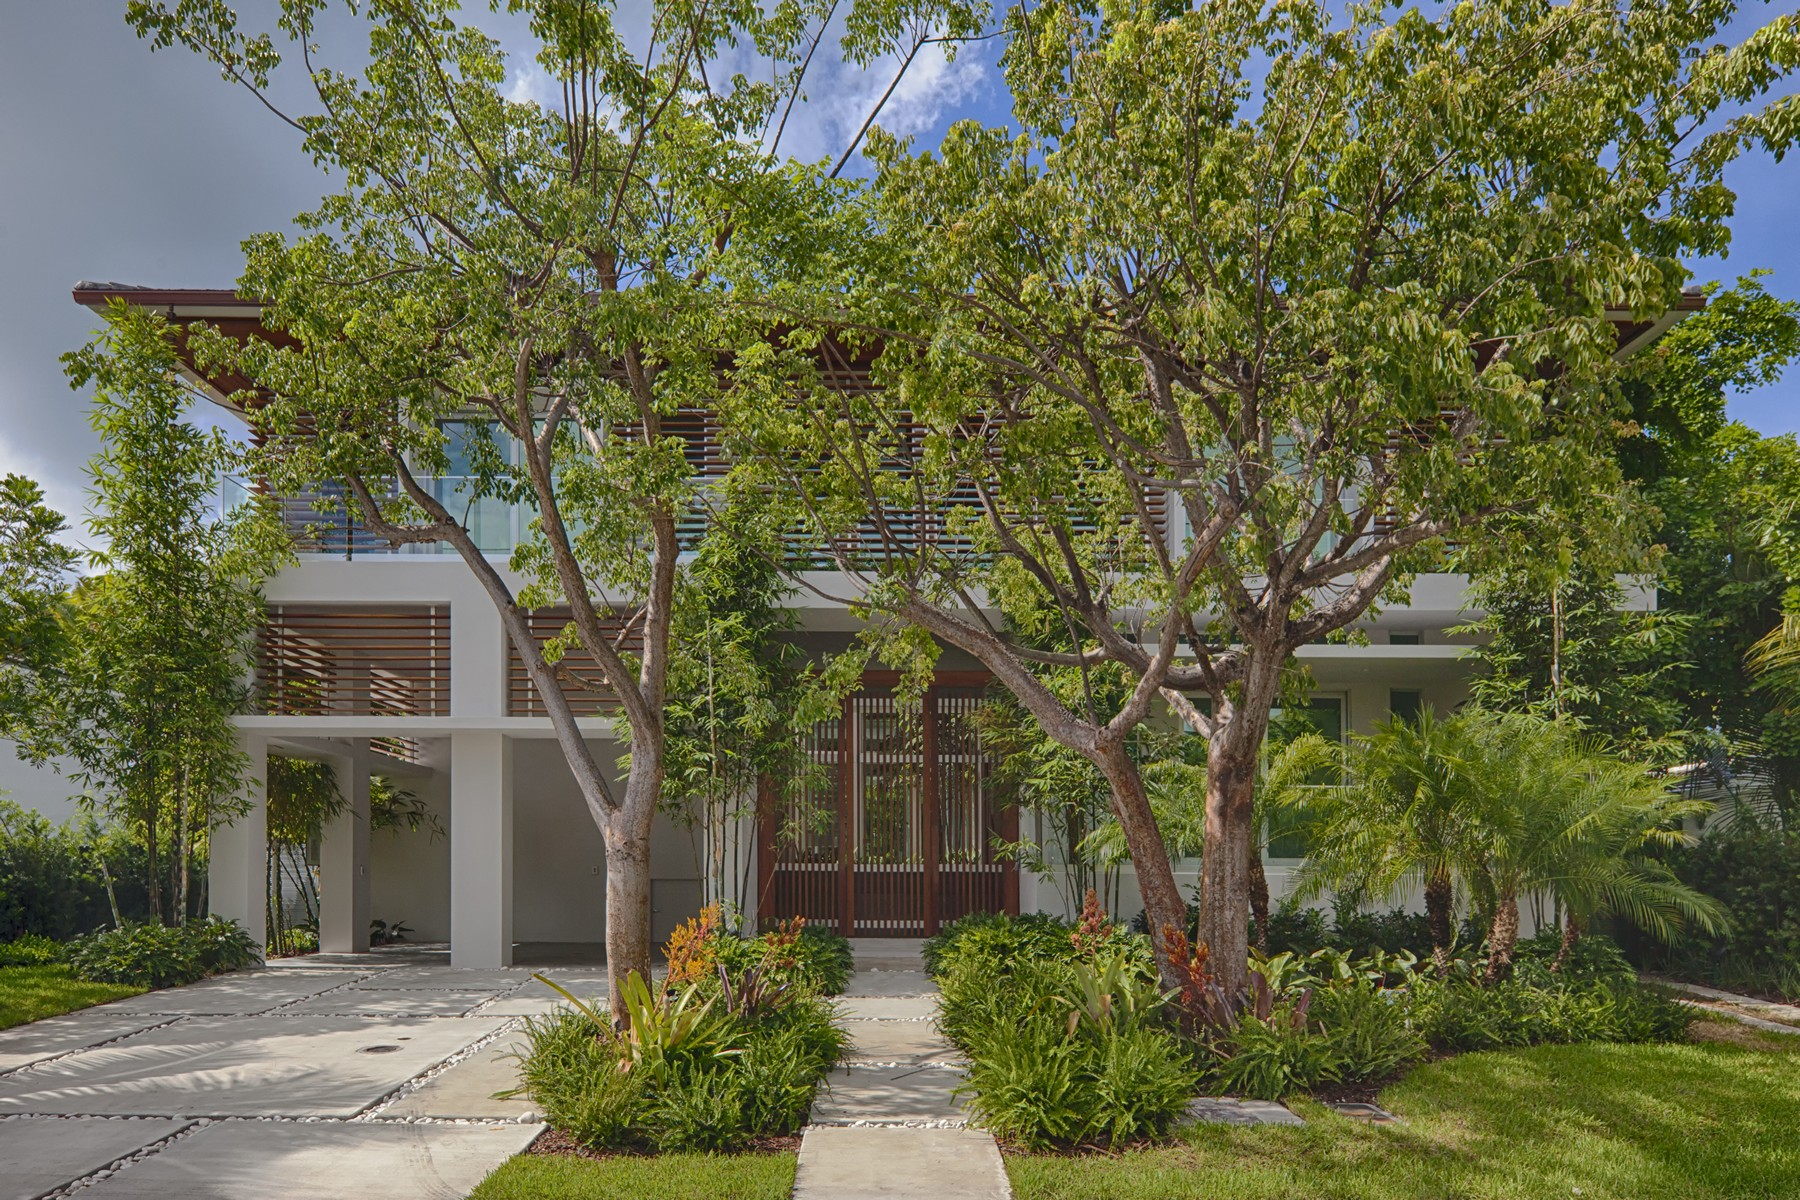 Single Family Home for Sale at 300 W Enid Dr Key Biscayne, FL 33149 Key Biscayne, Florida 33149 United States